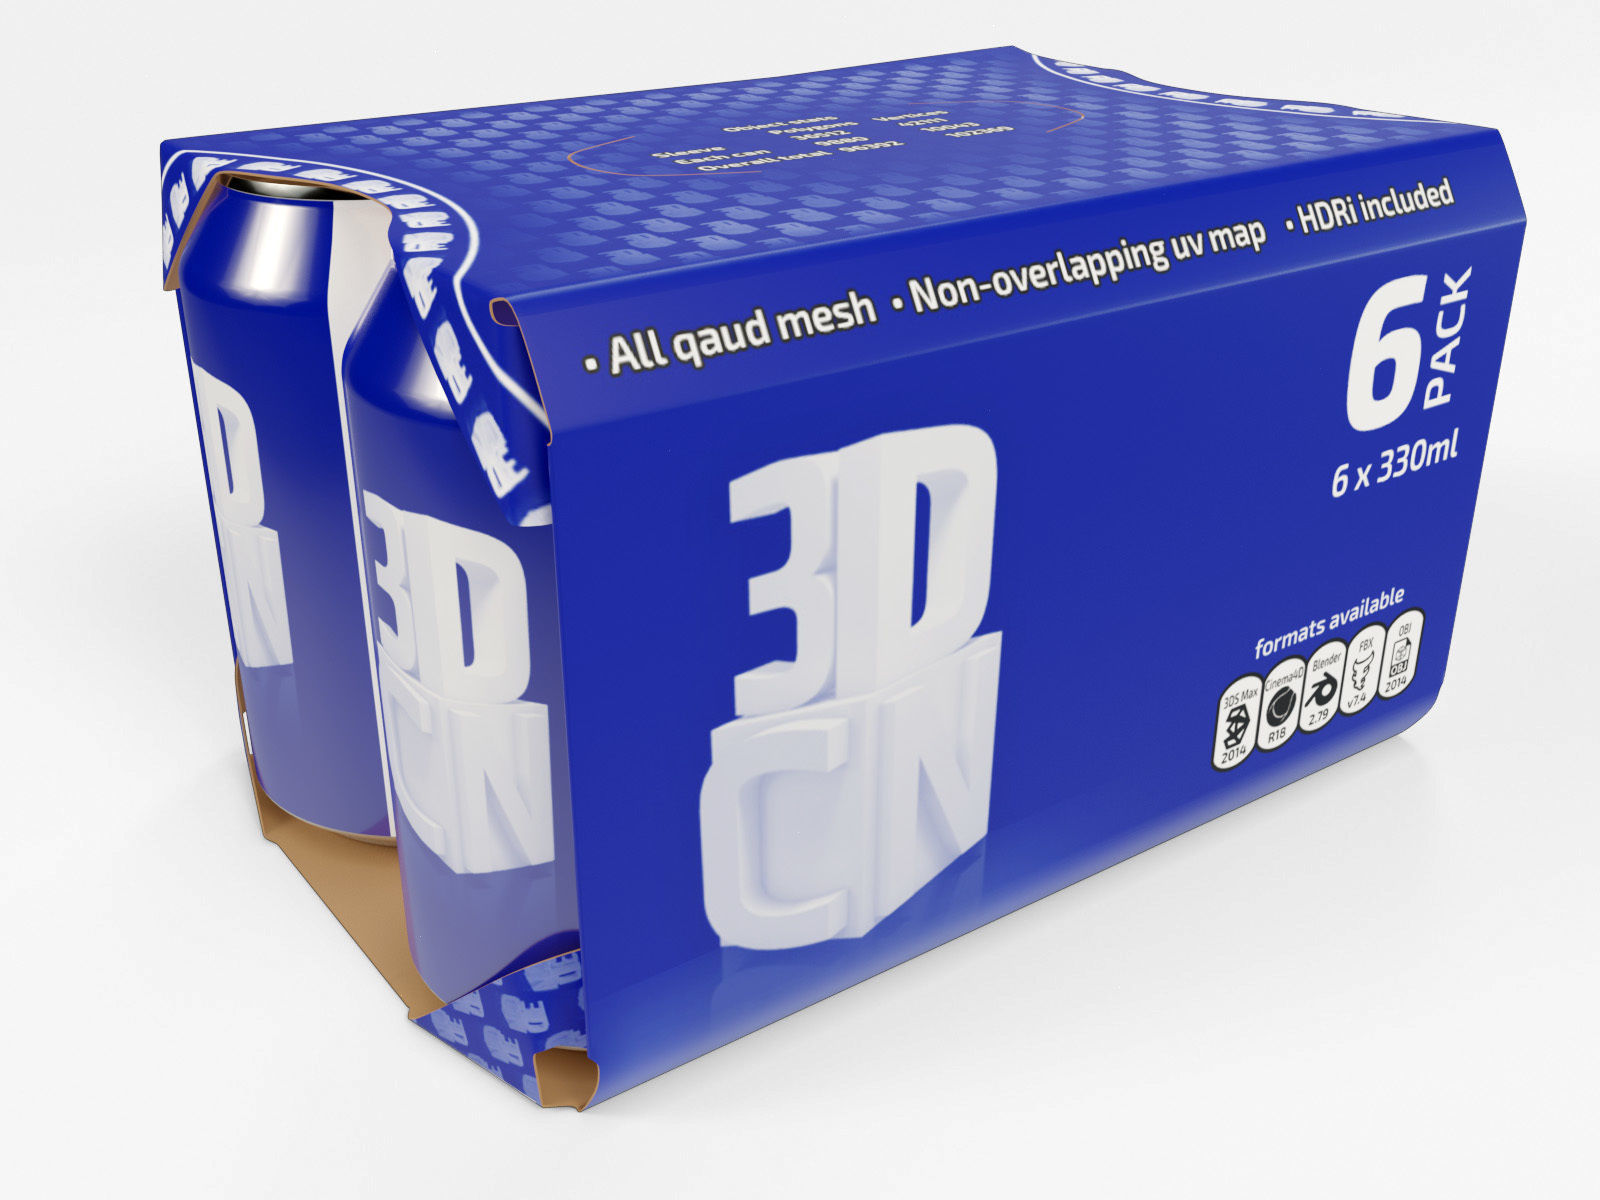 6 pack 330ml beverage cans in a cardboard sleeve